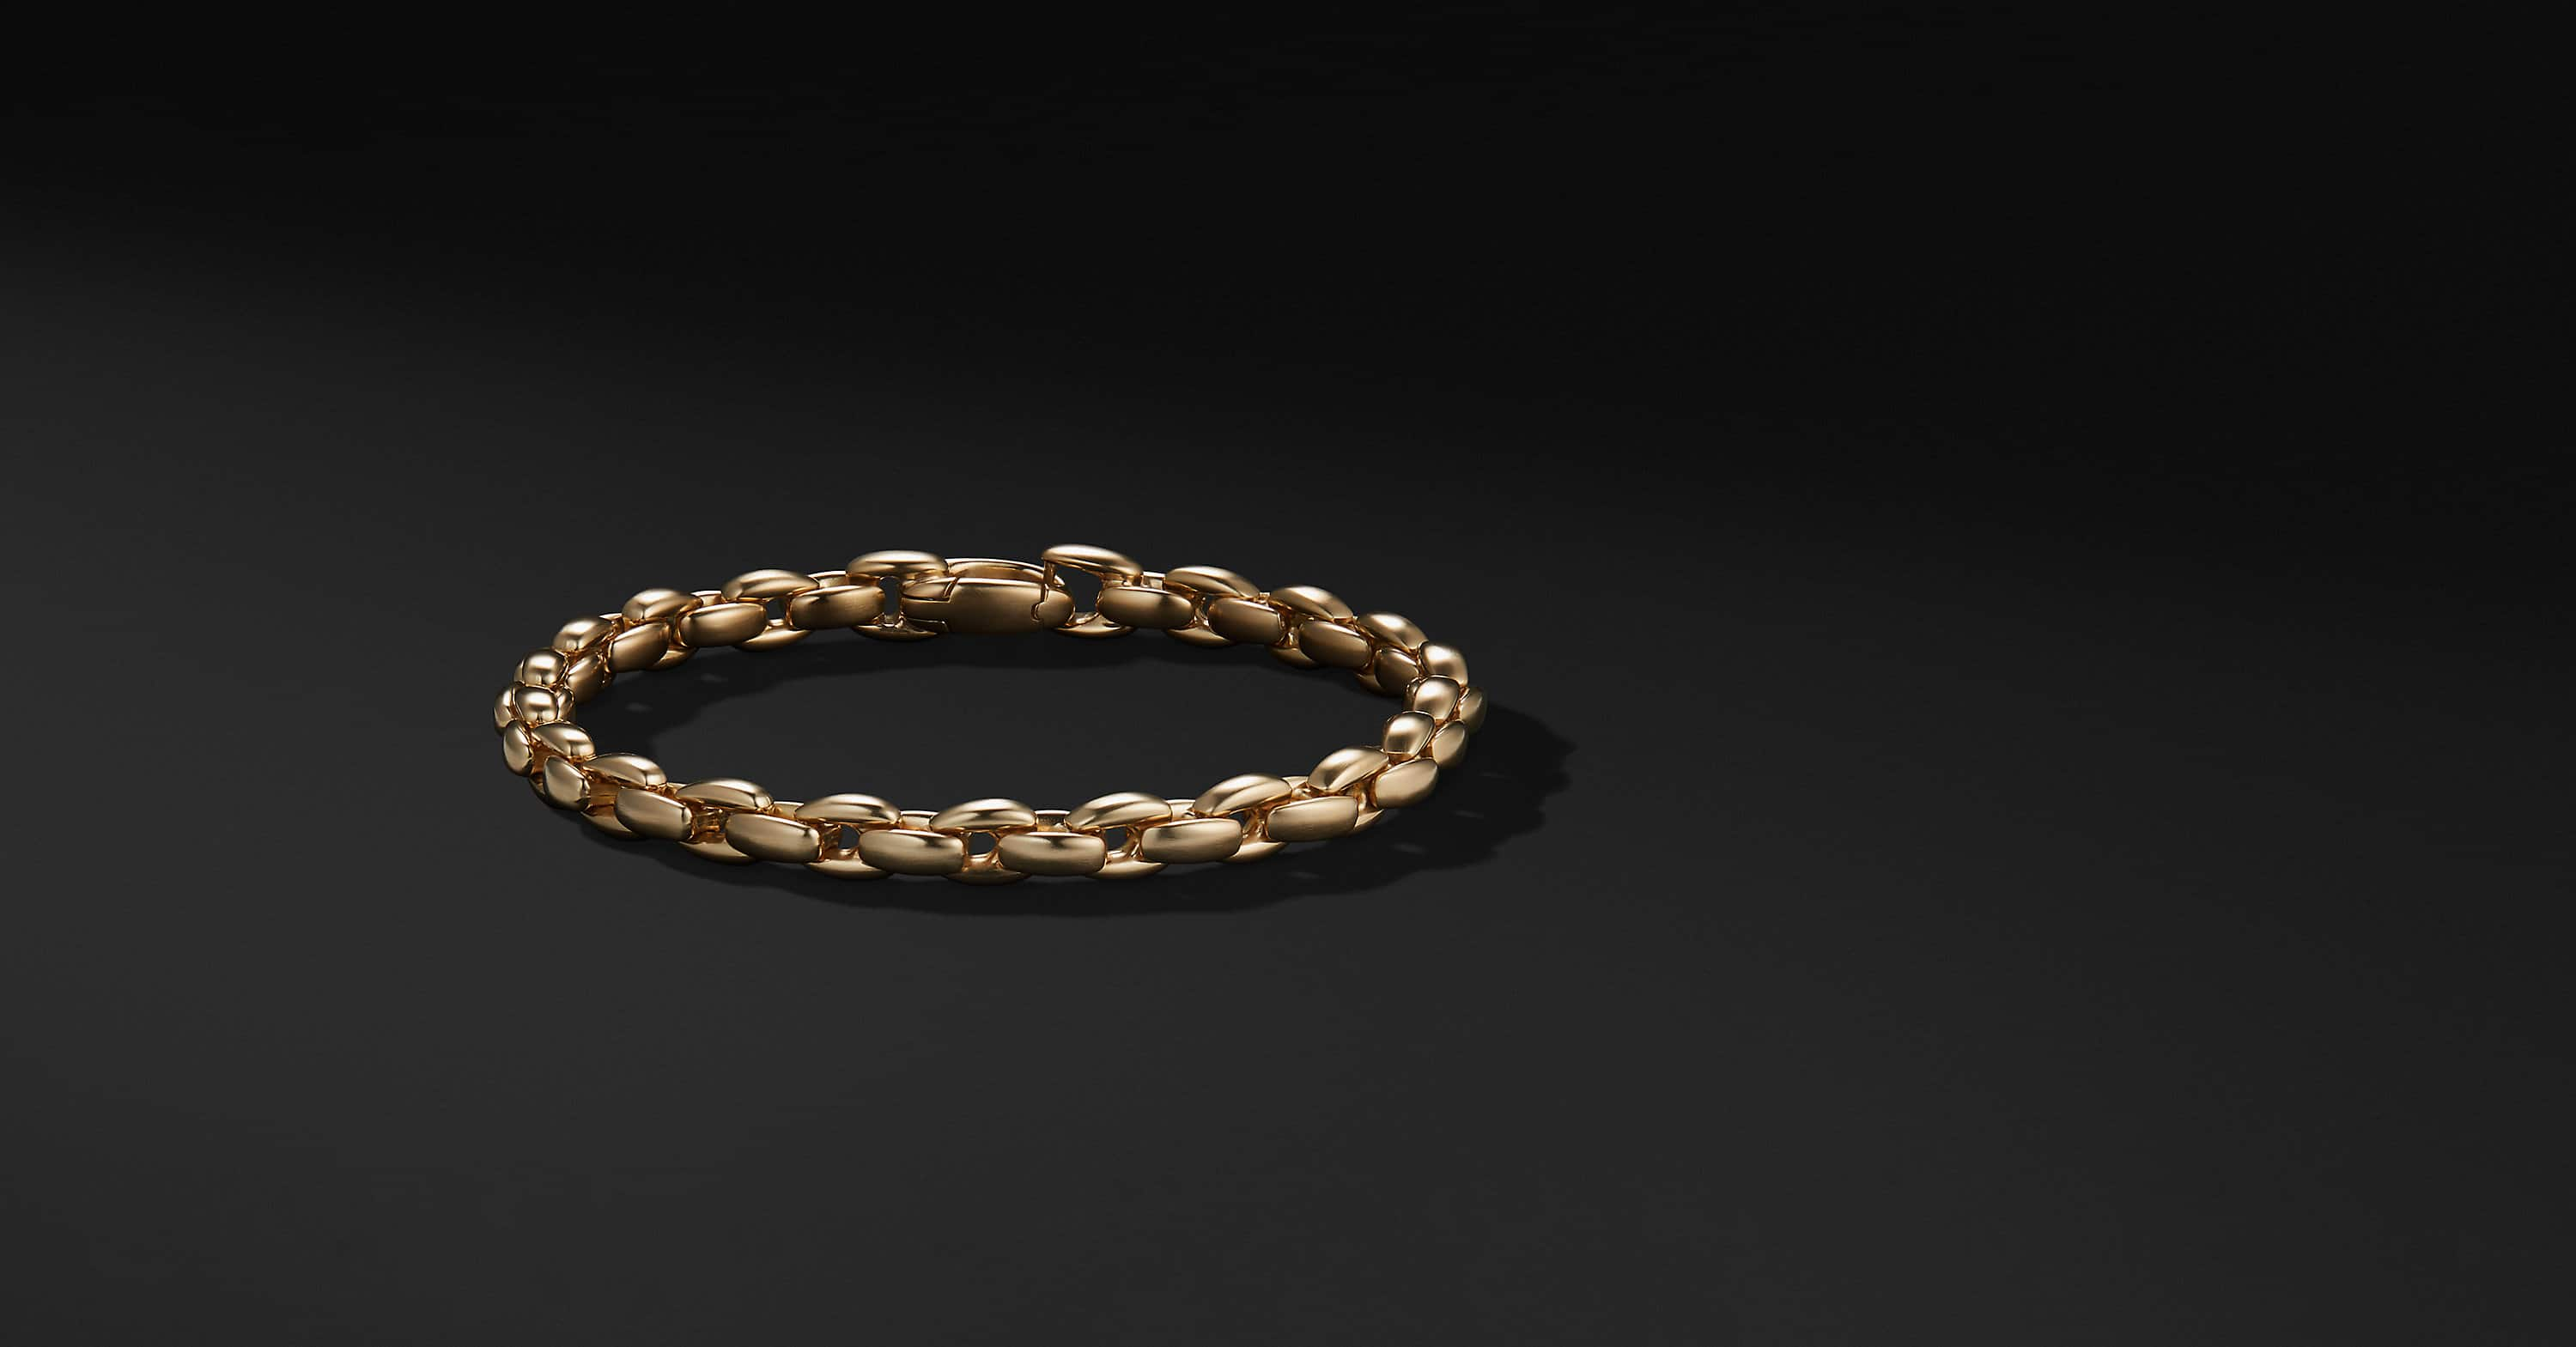 Elongated Box Chain Bracelet in 18K Gold, 6mm